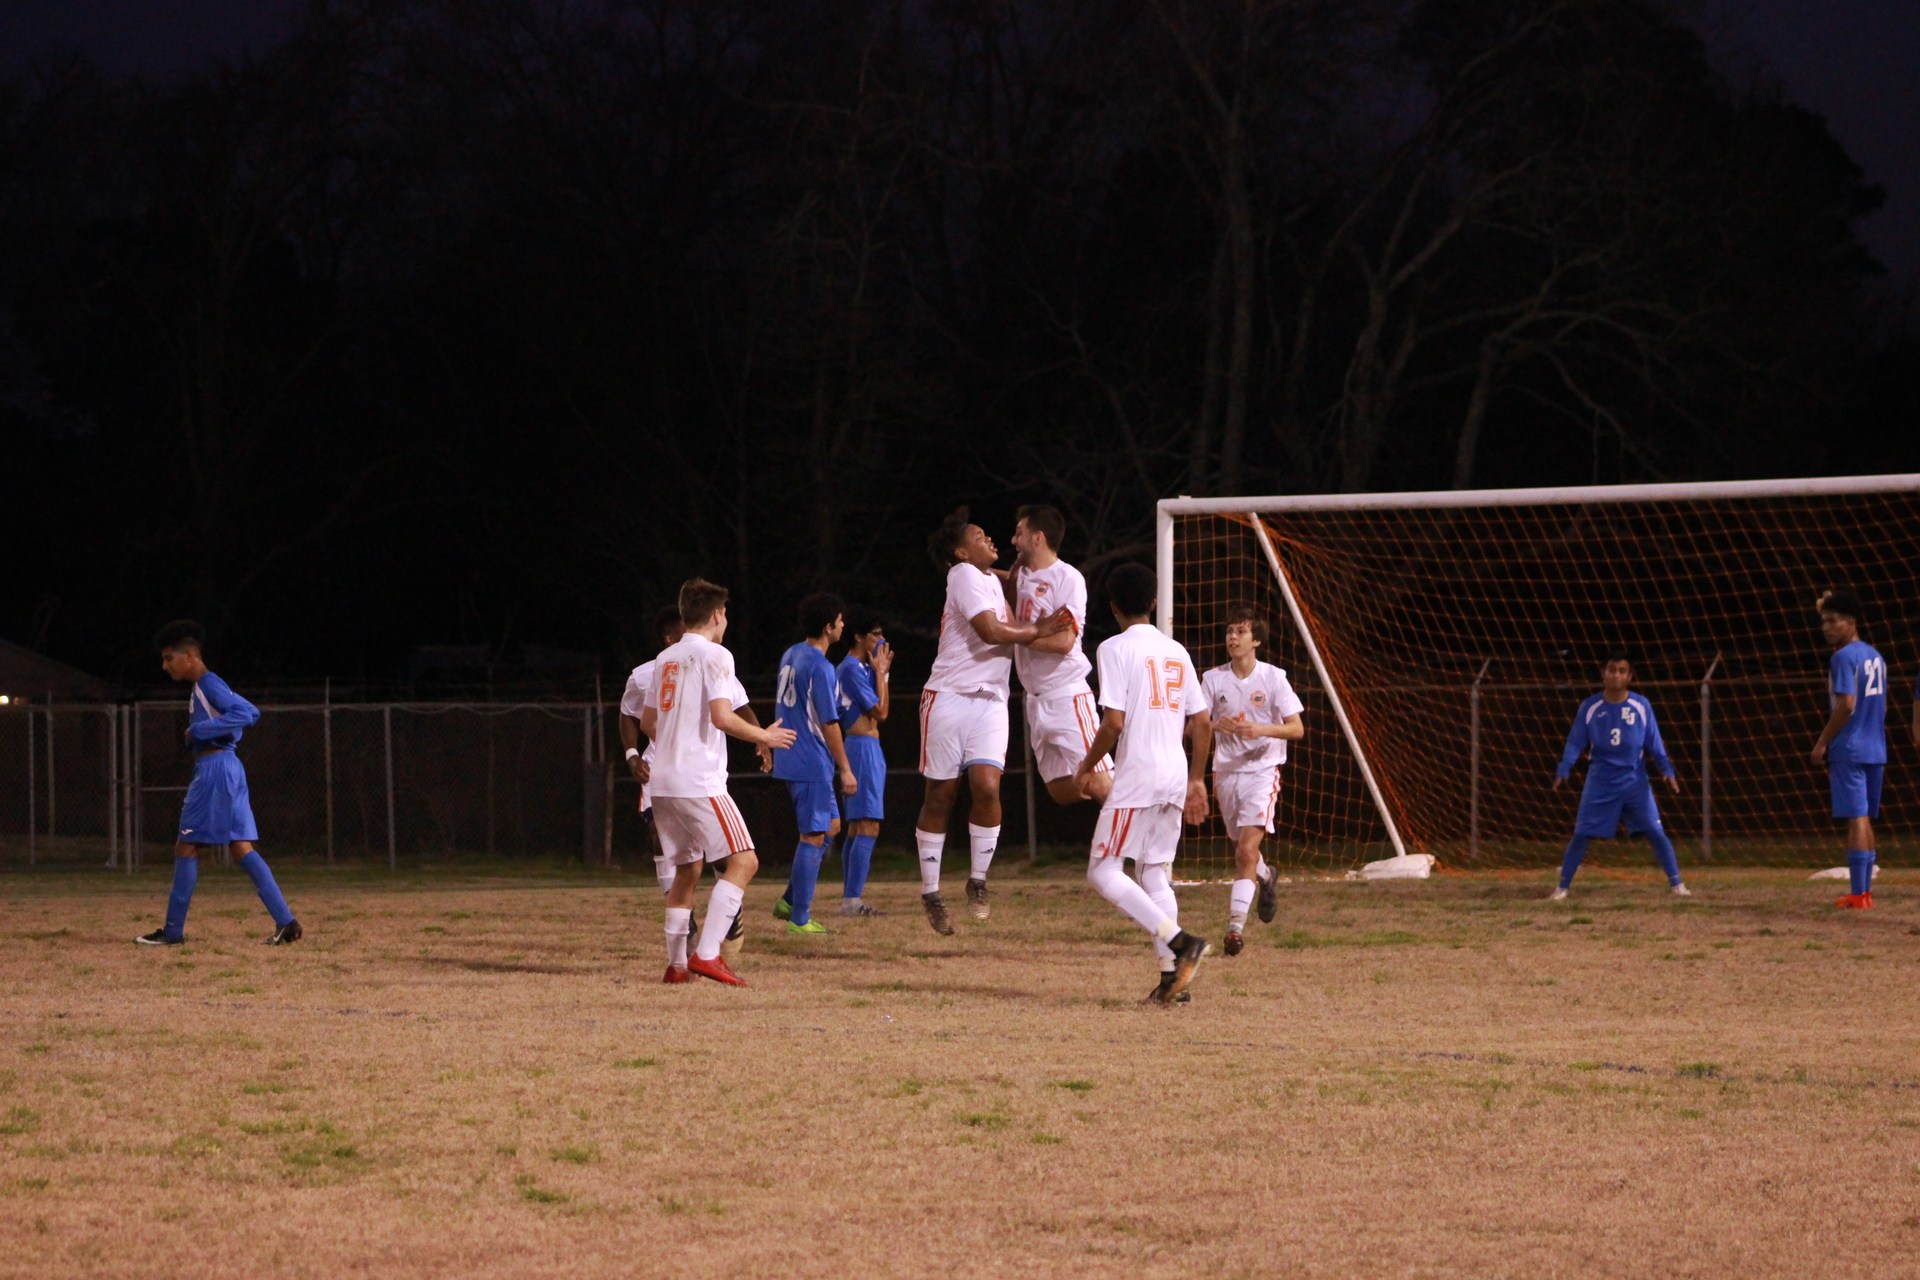 Jake G. and Latrell B. celebrating after their goal.